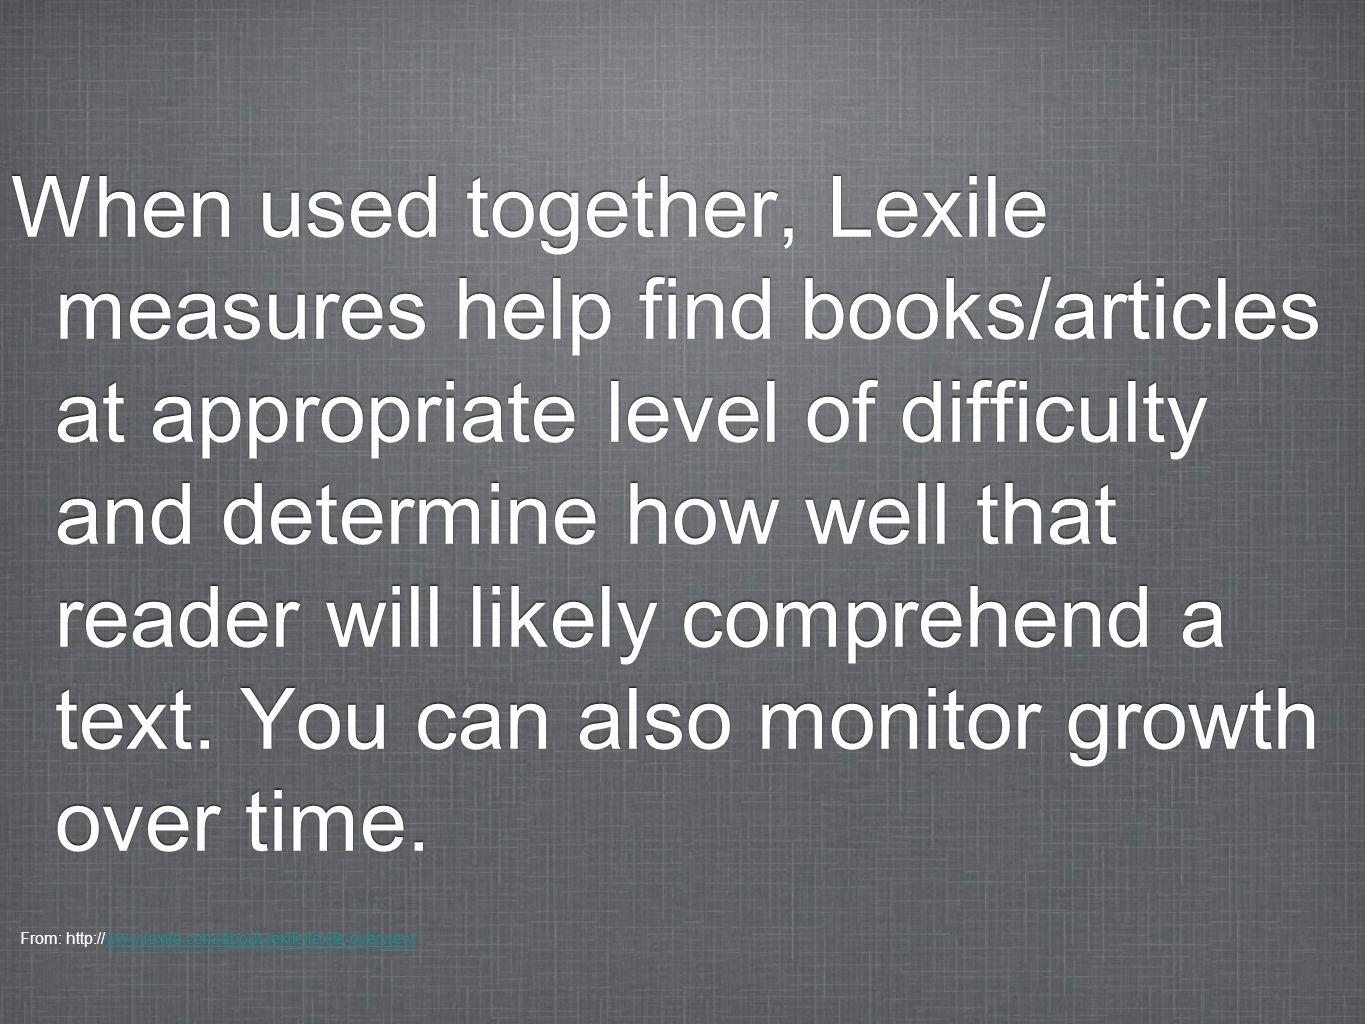 When used together, Lexile measures help find books/articles at appropriate level of difficulty and determine how well that reader will likely comprehend a text. You can also monitor growth over time.